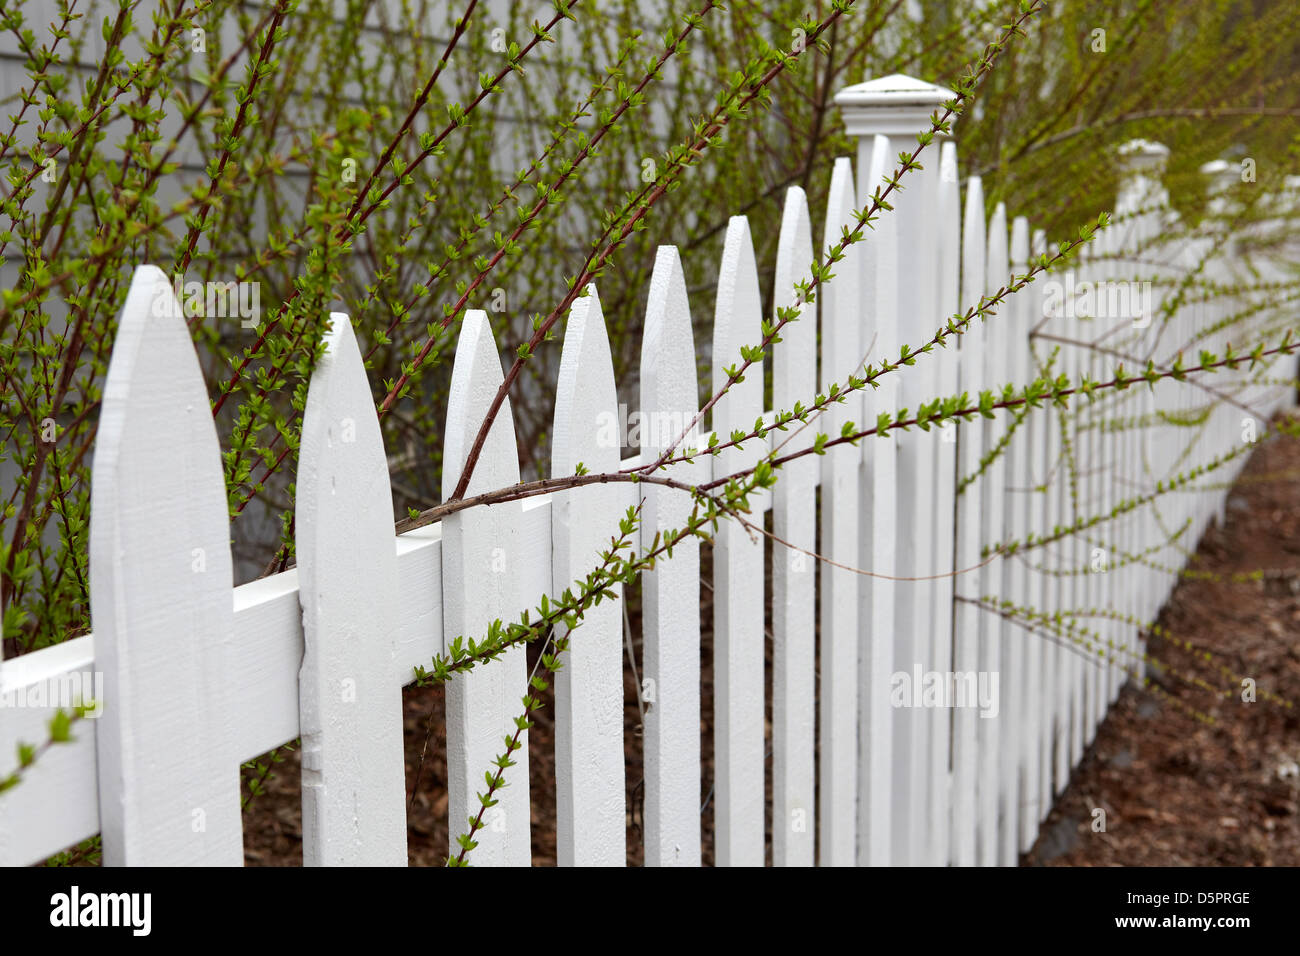 Spring foliage growing beyond picket fence - Stock Image